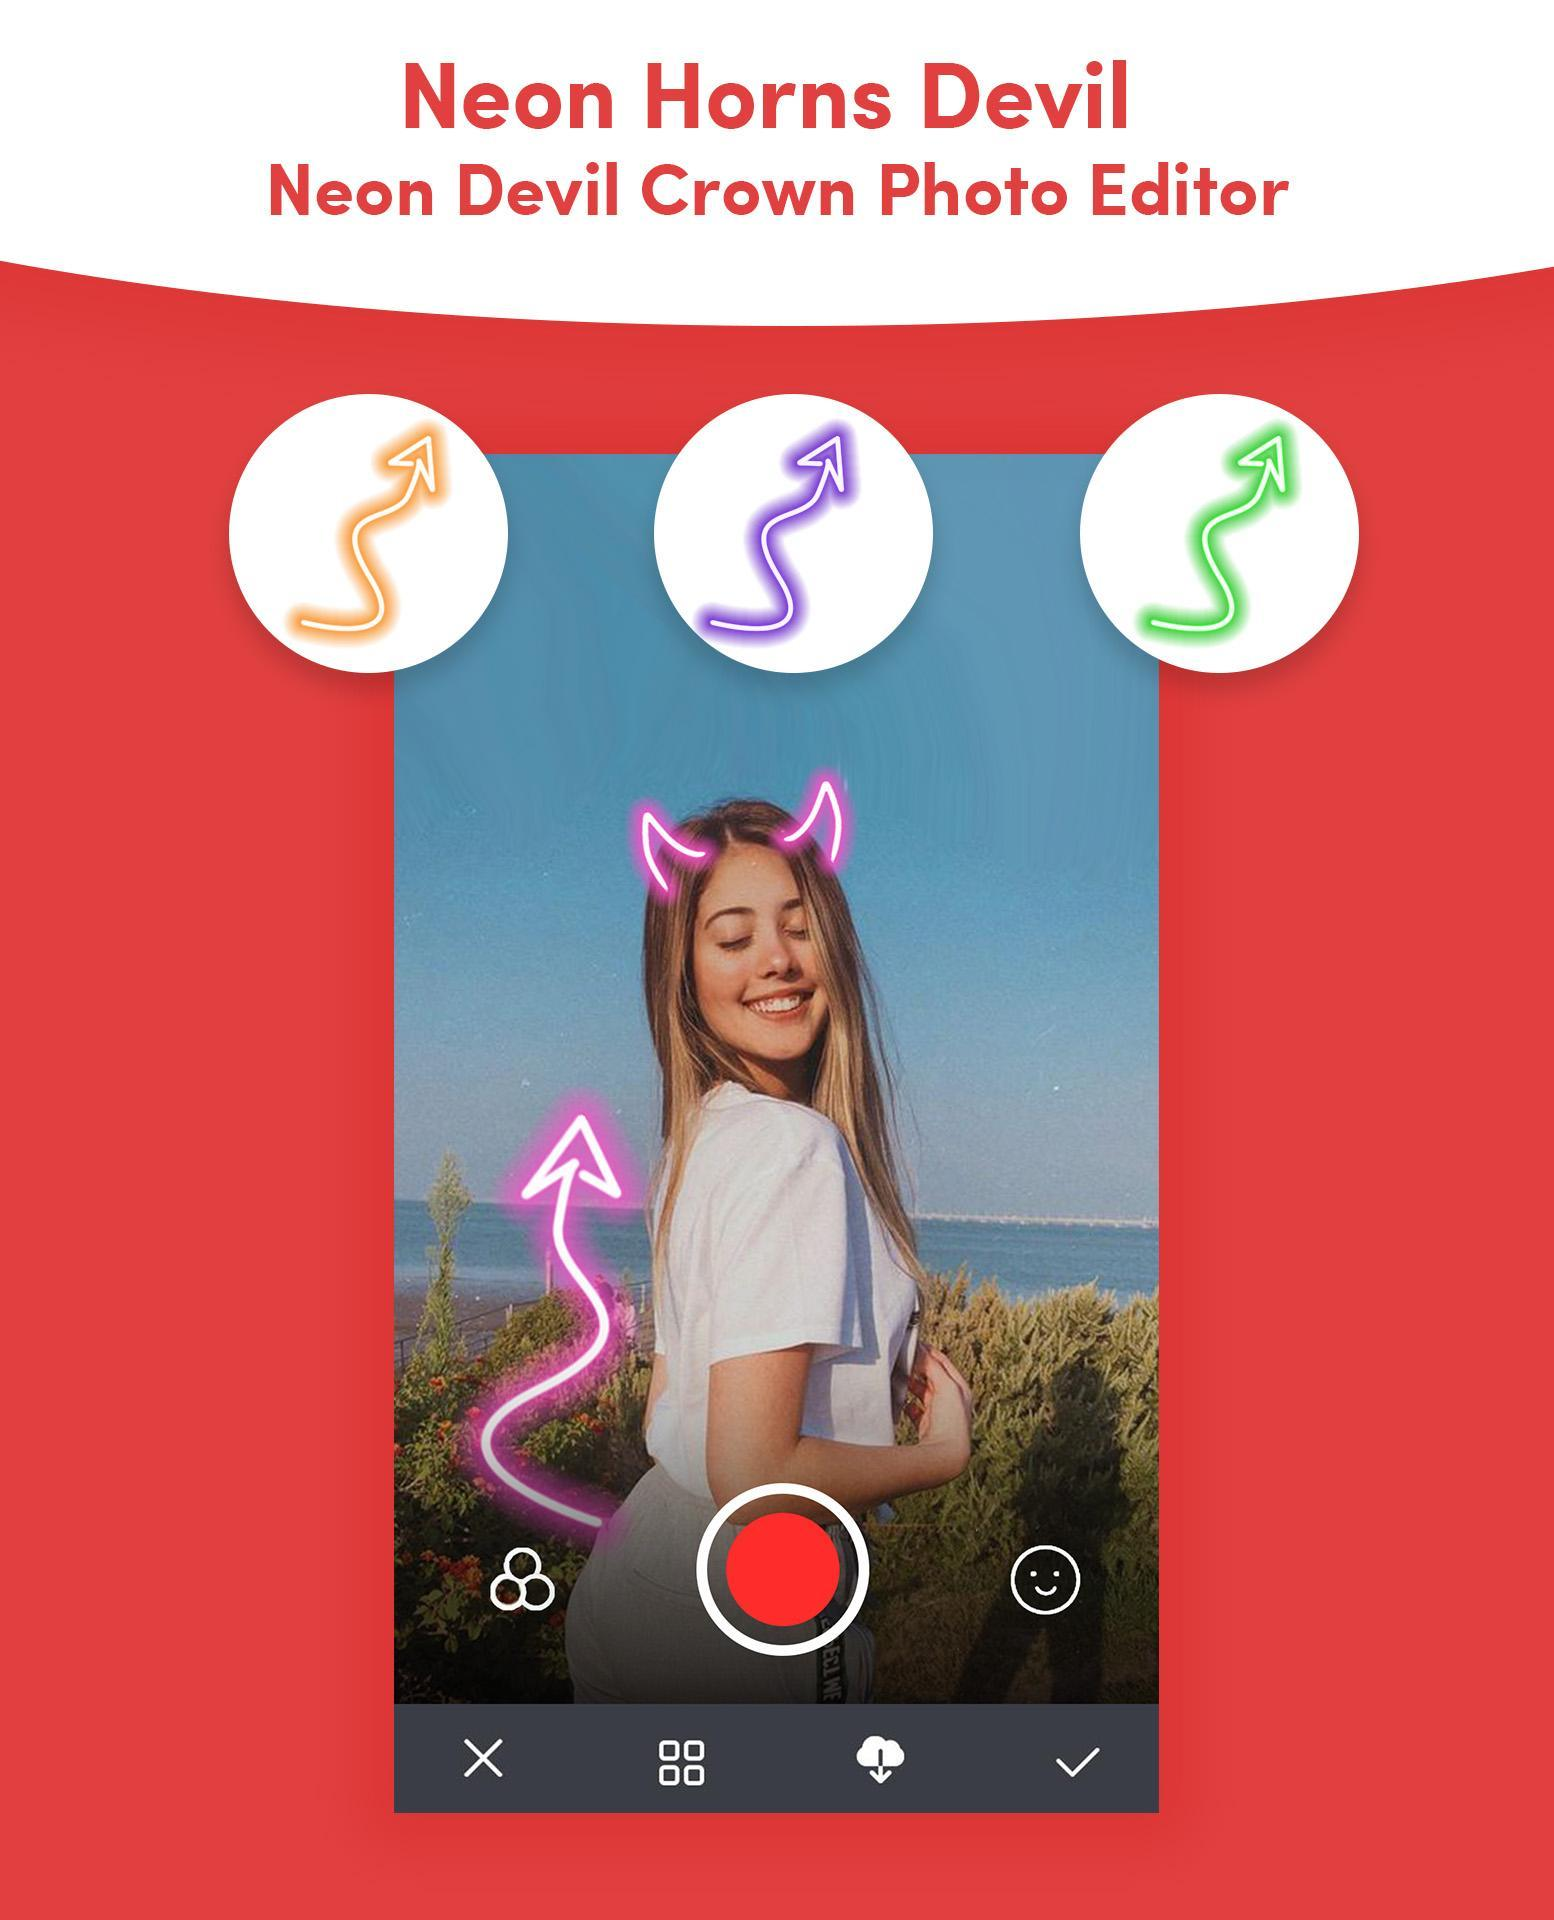 Neon Horns Devil Neon Devil Crown Photo Editor For Android Apk Download